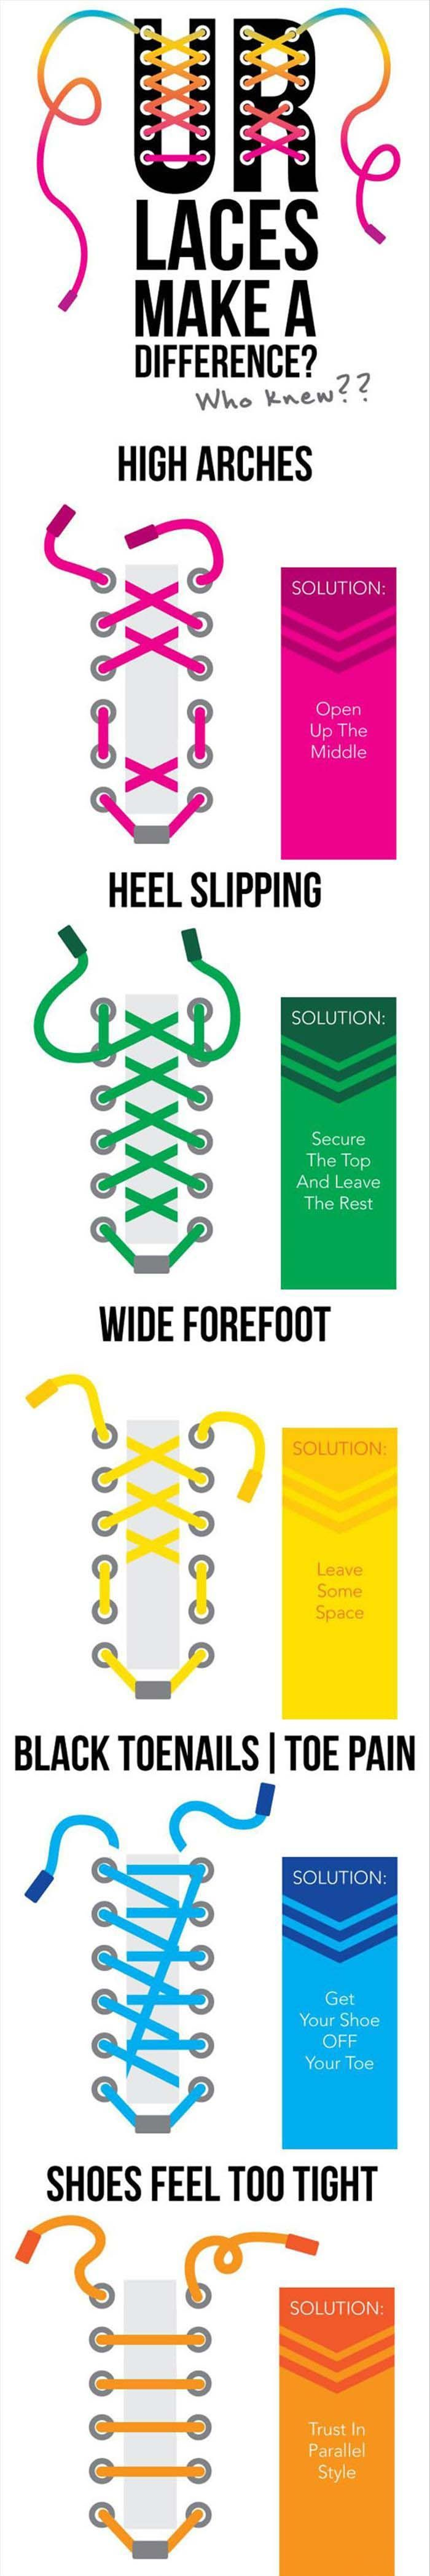 You've Been Tying Your Shoes Wrong Your Entire Life - 5 ...